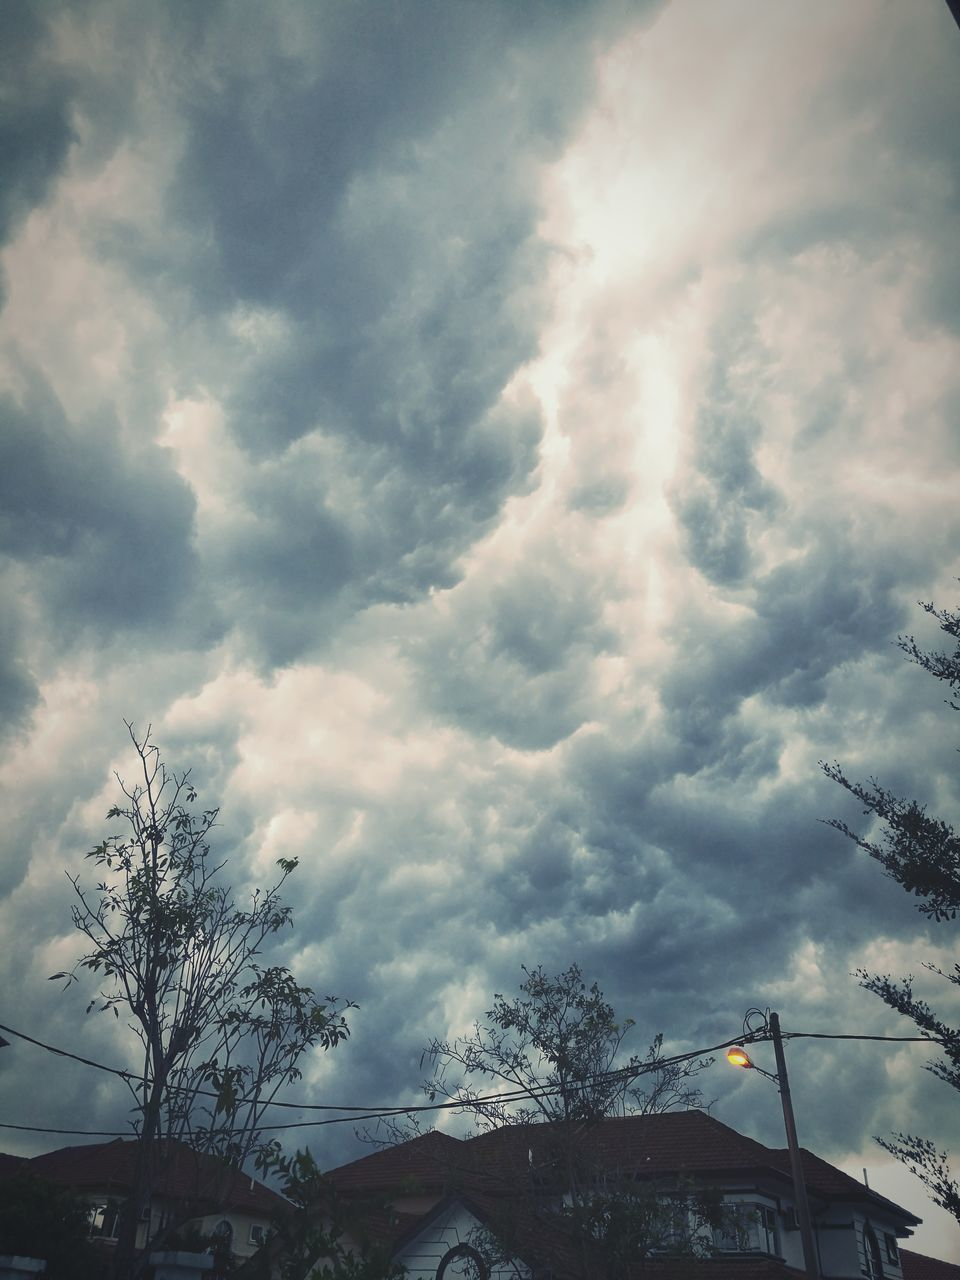 cloud - sky, sky, weather, low angle view, no people, beauty in nature, nature, outdoors, tree, day, storm cloud, building exterior, architecture